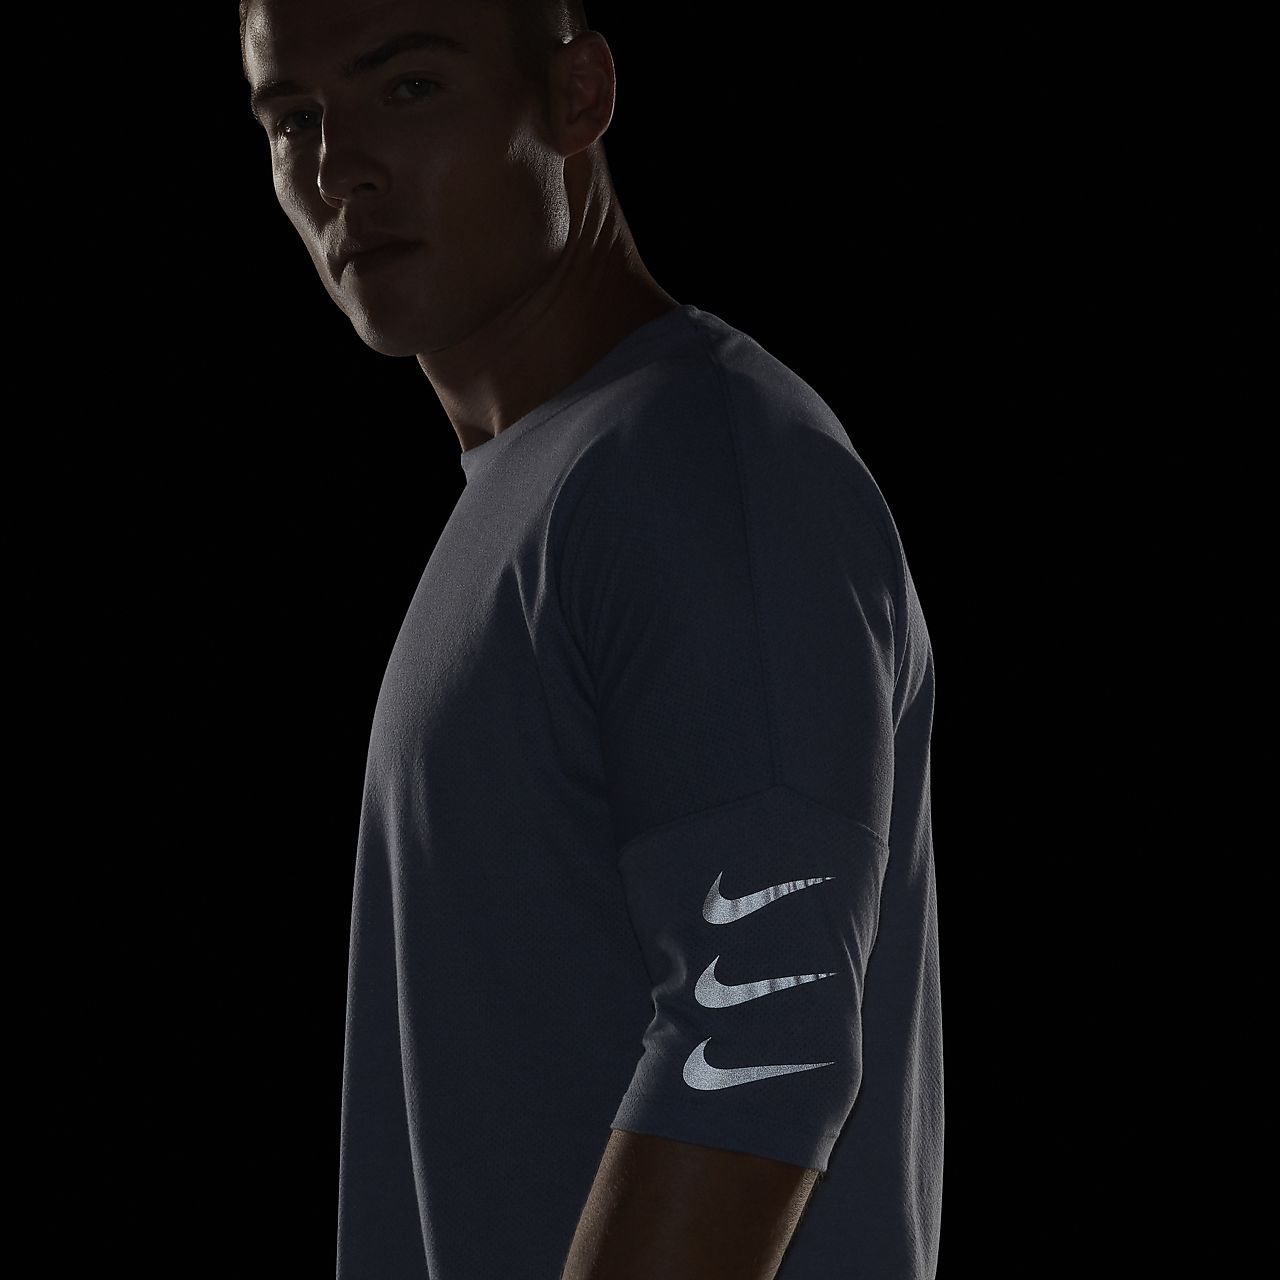 d5a9b0378ec0 Nike Rise 365 Men s Half-Sleeve Running Top. Nike.com IN